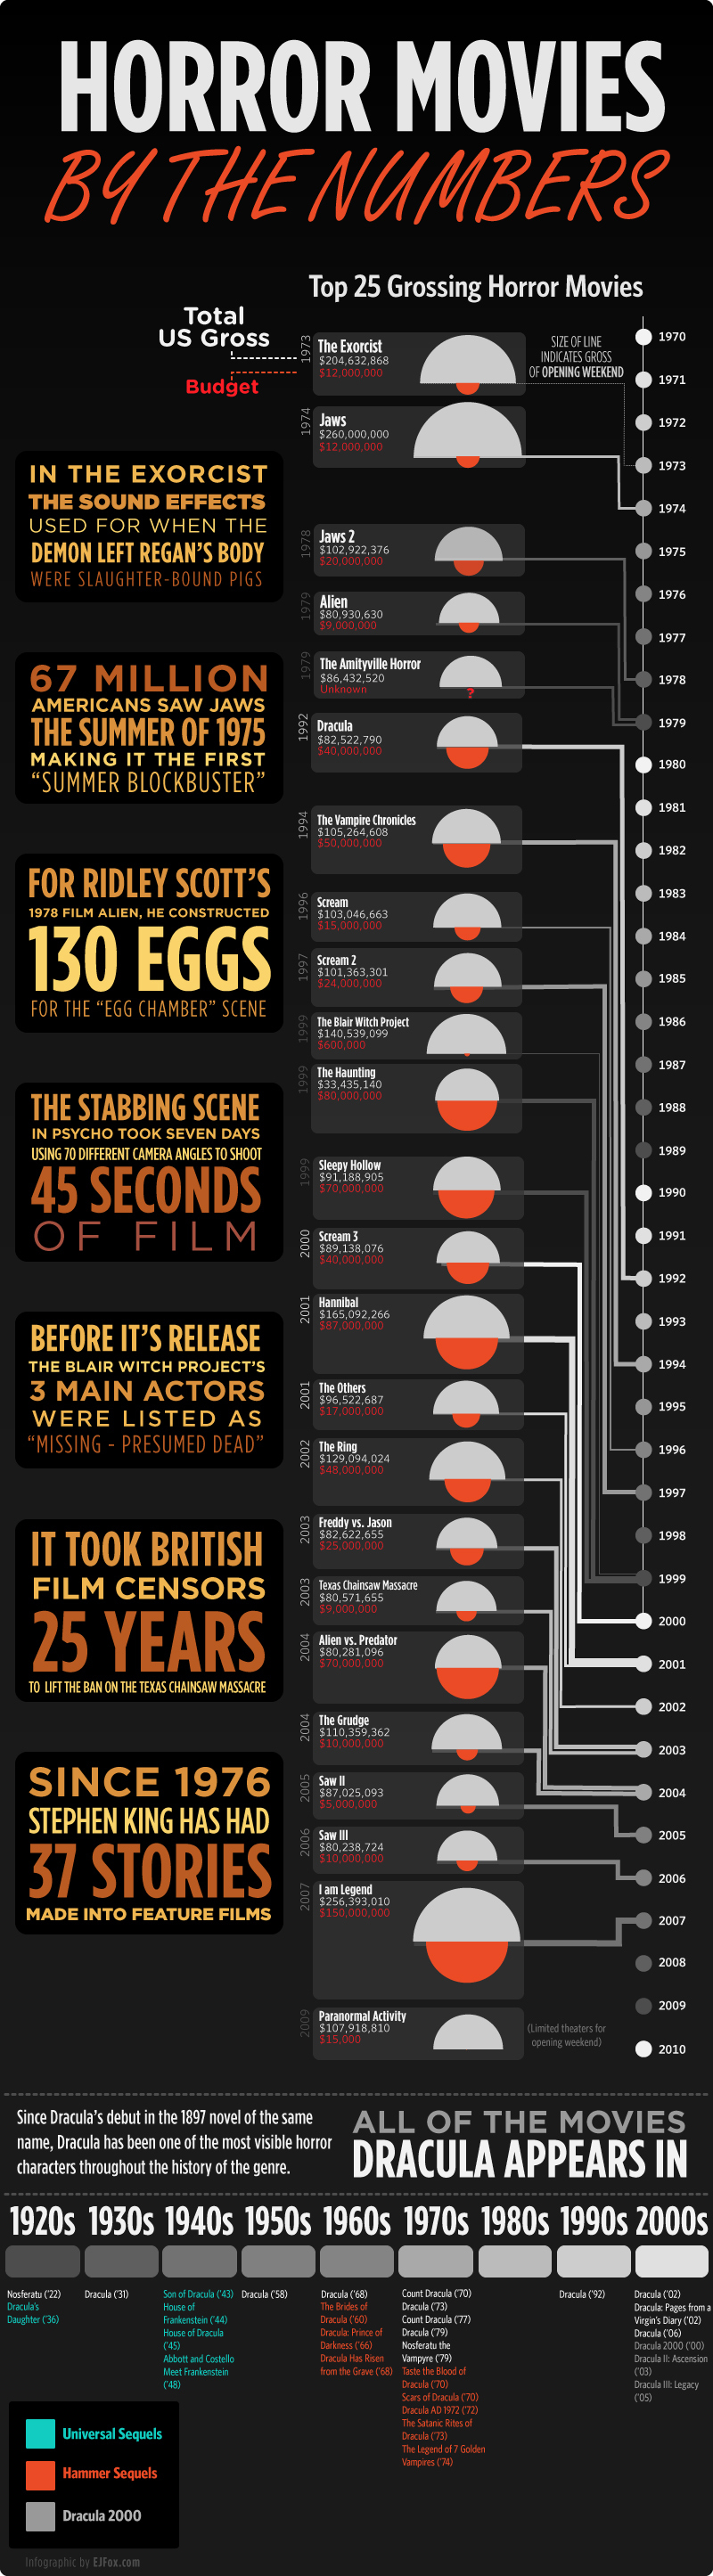 The Most Popular Horror Movies